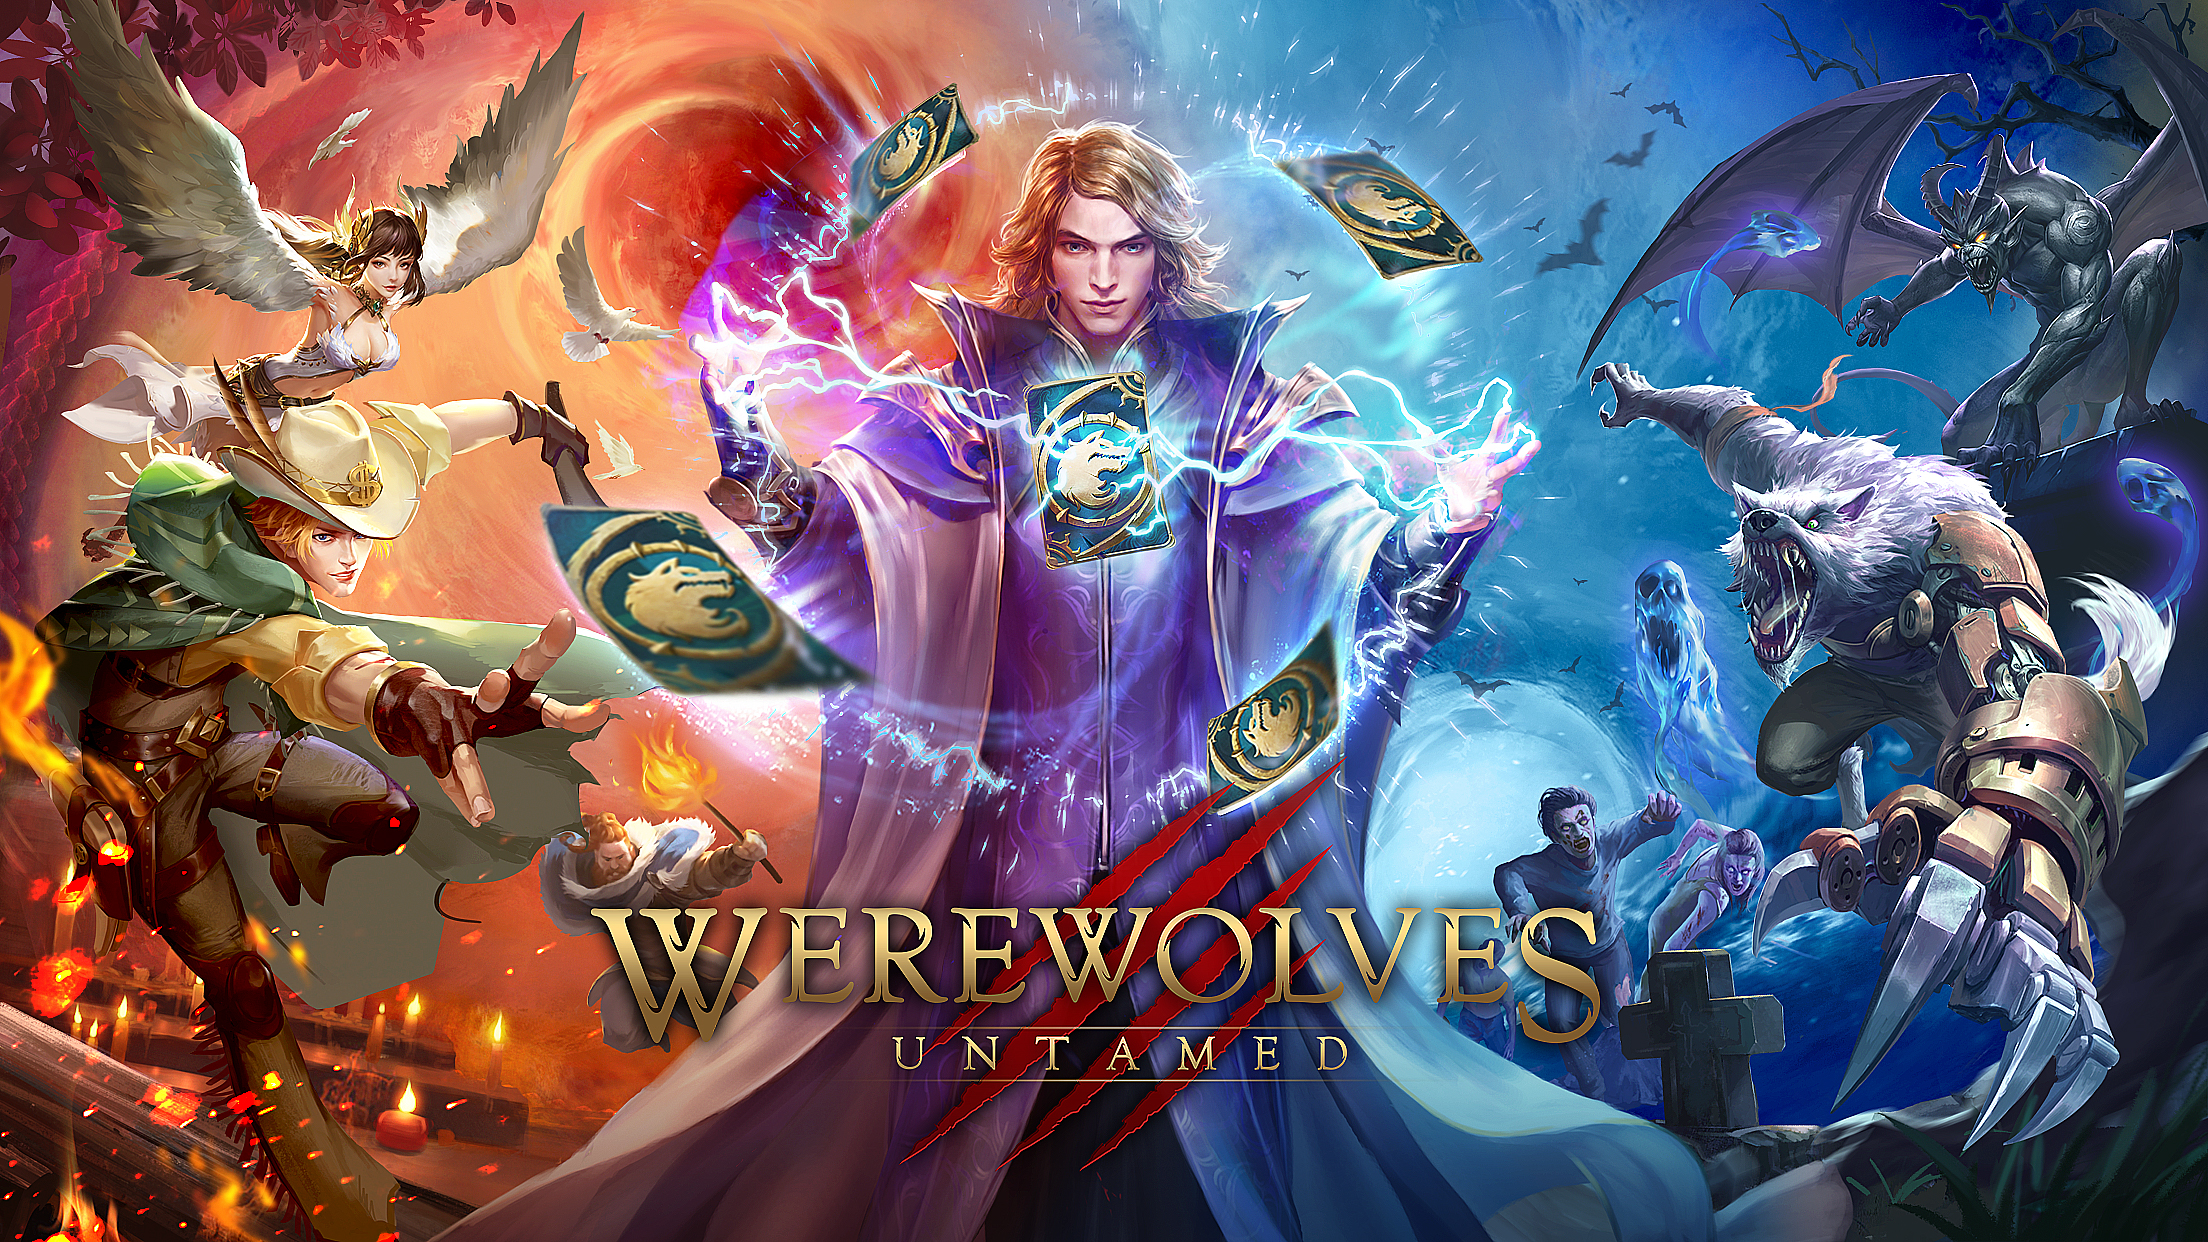 The First CCG Card Mobile Game with The Theme of Werewolf Killing Werewolves Untamed Officially Launched Today